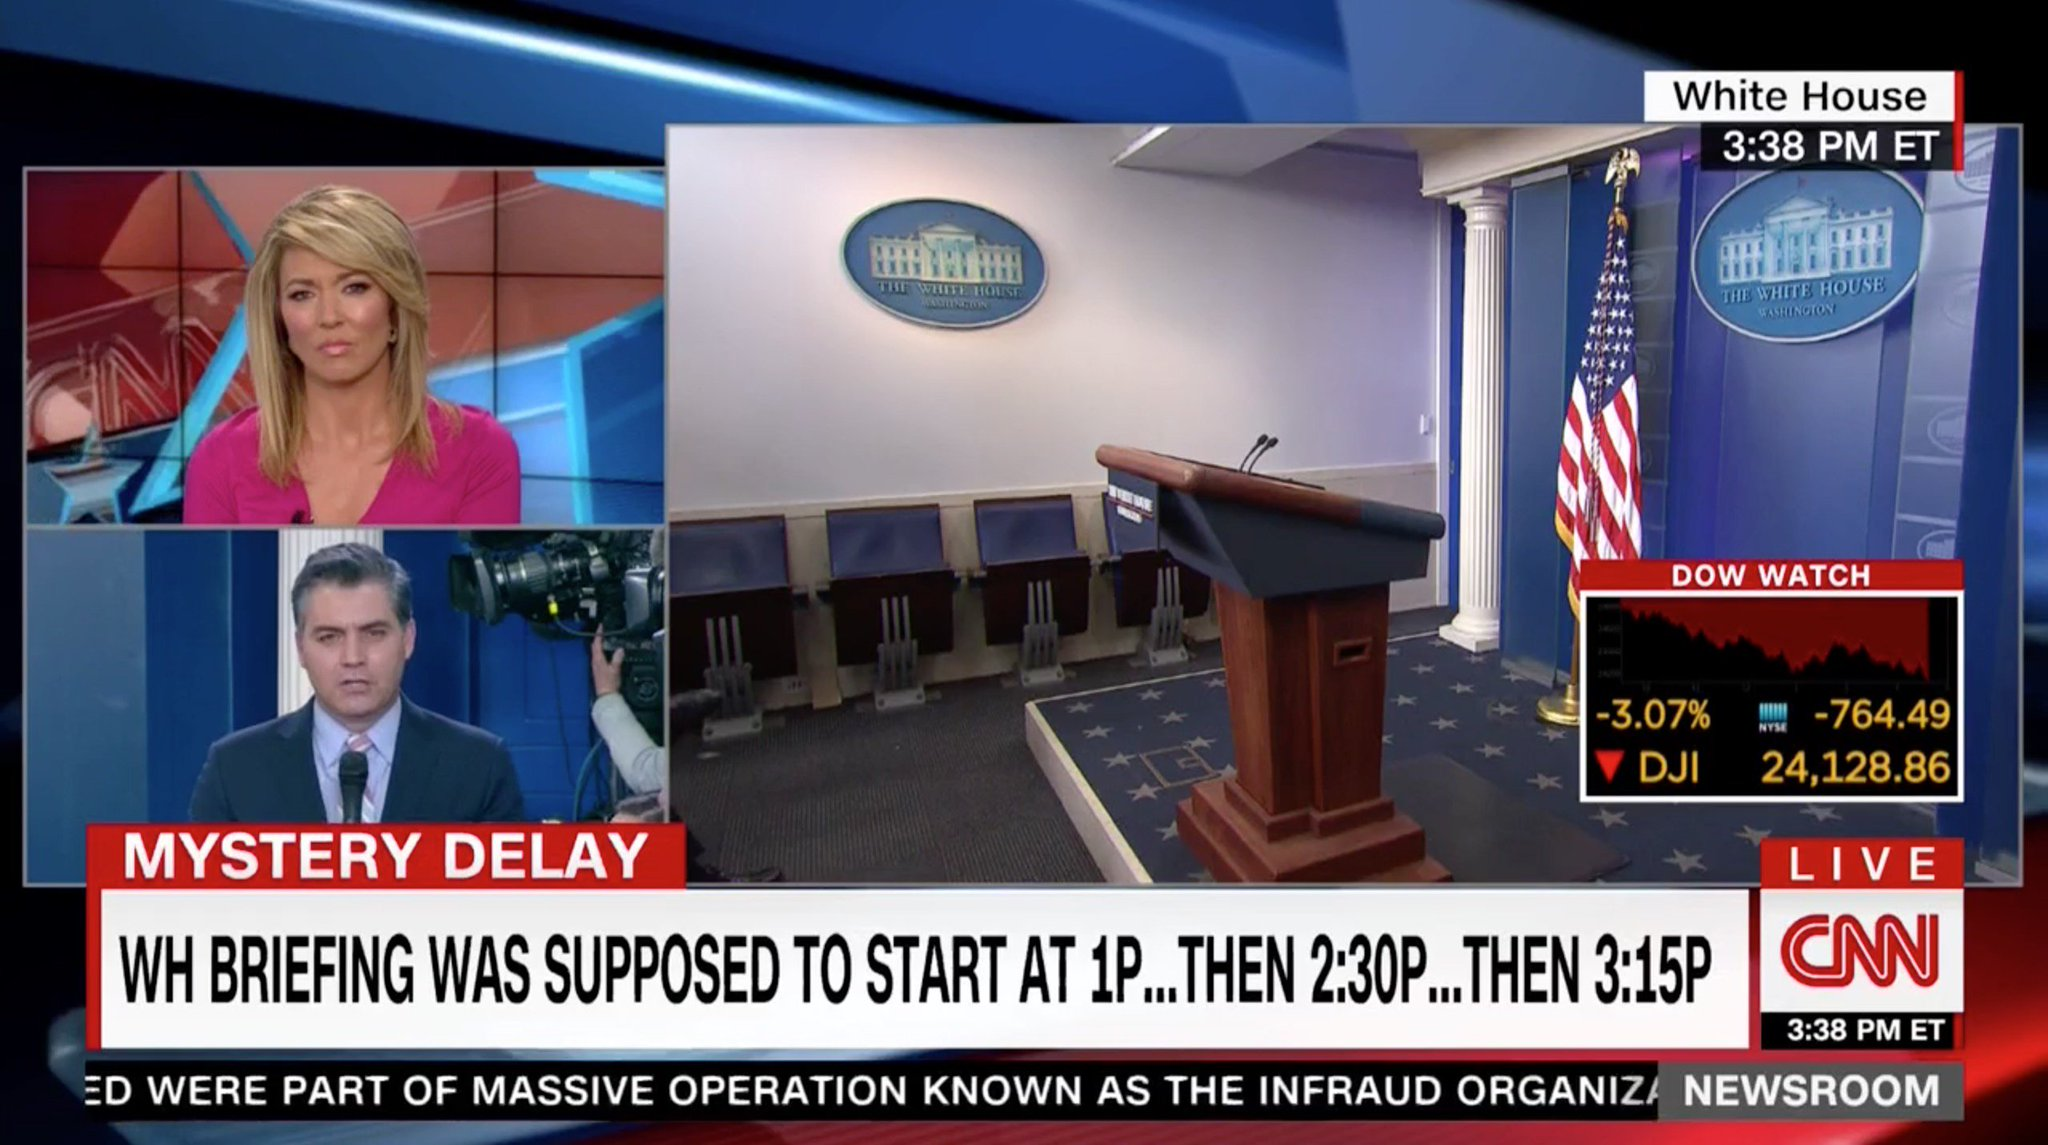 CNN is Not Happy WH Deputy Press Sec Raj Shah Showed Up Three Hours Late to the Briefing https://t.co/vNWgUzGm7E https://t.co/ECk86XUglx